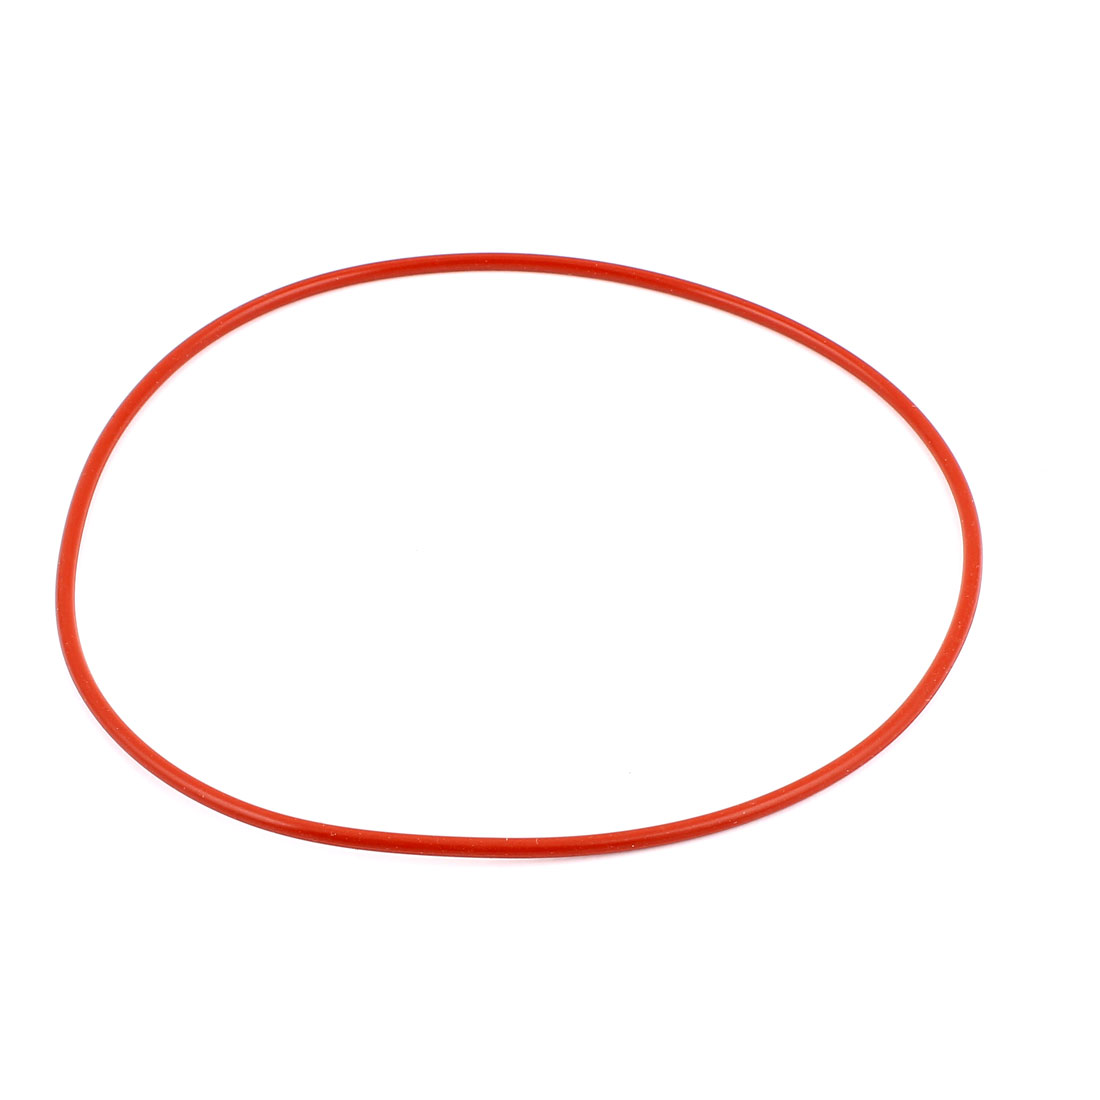 Rubber 165mm x 159mm x 3.5mm Oil Seal O Rings Gaskets Washers Brick Red